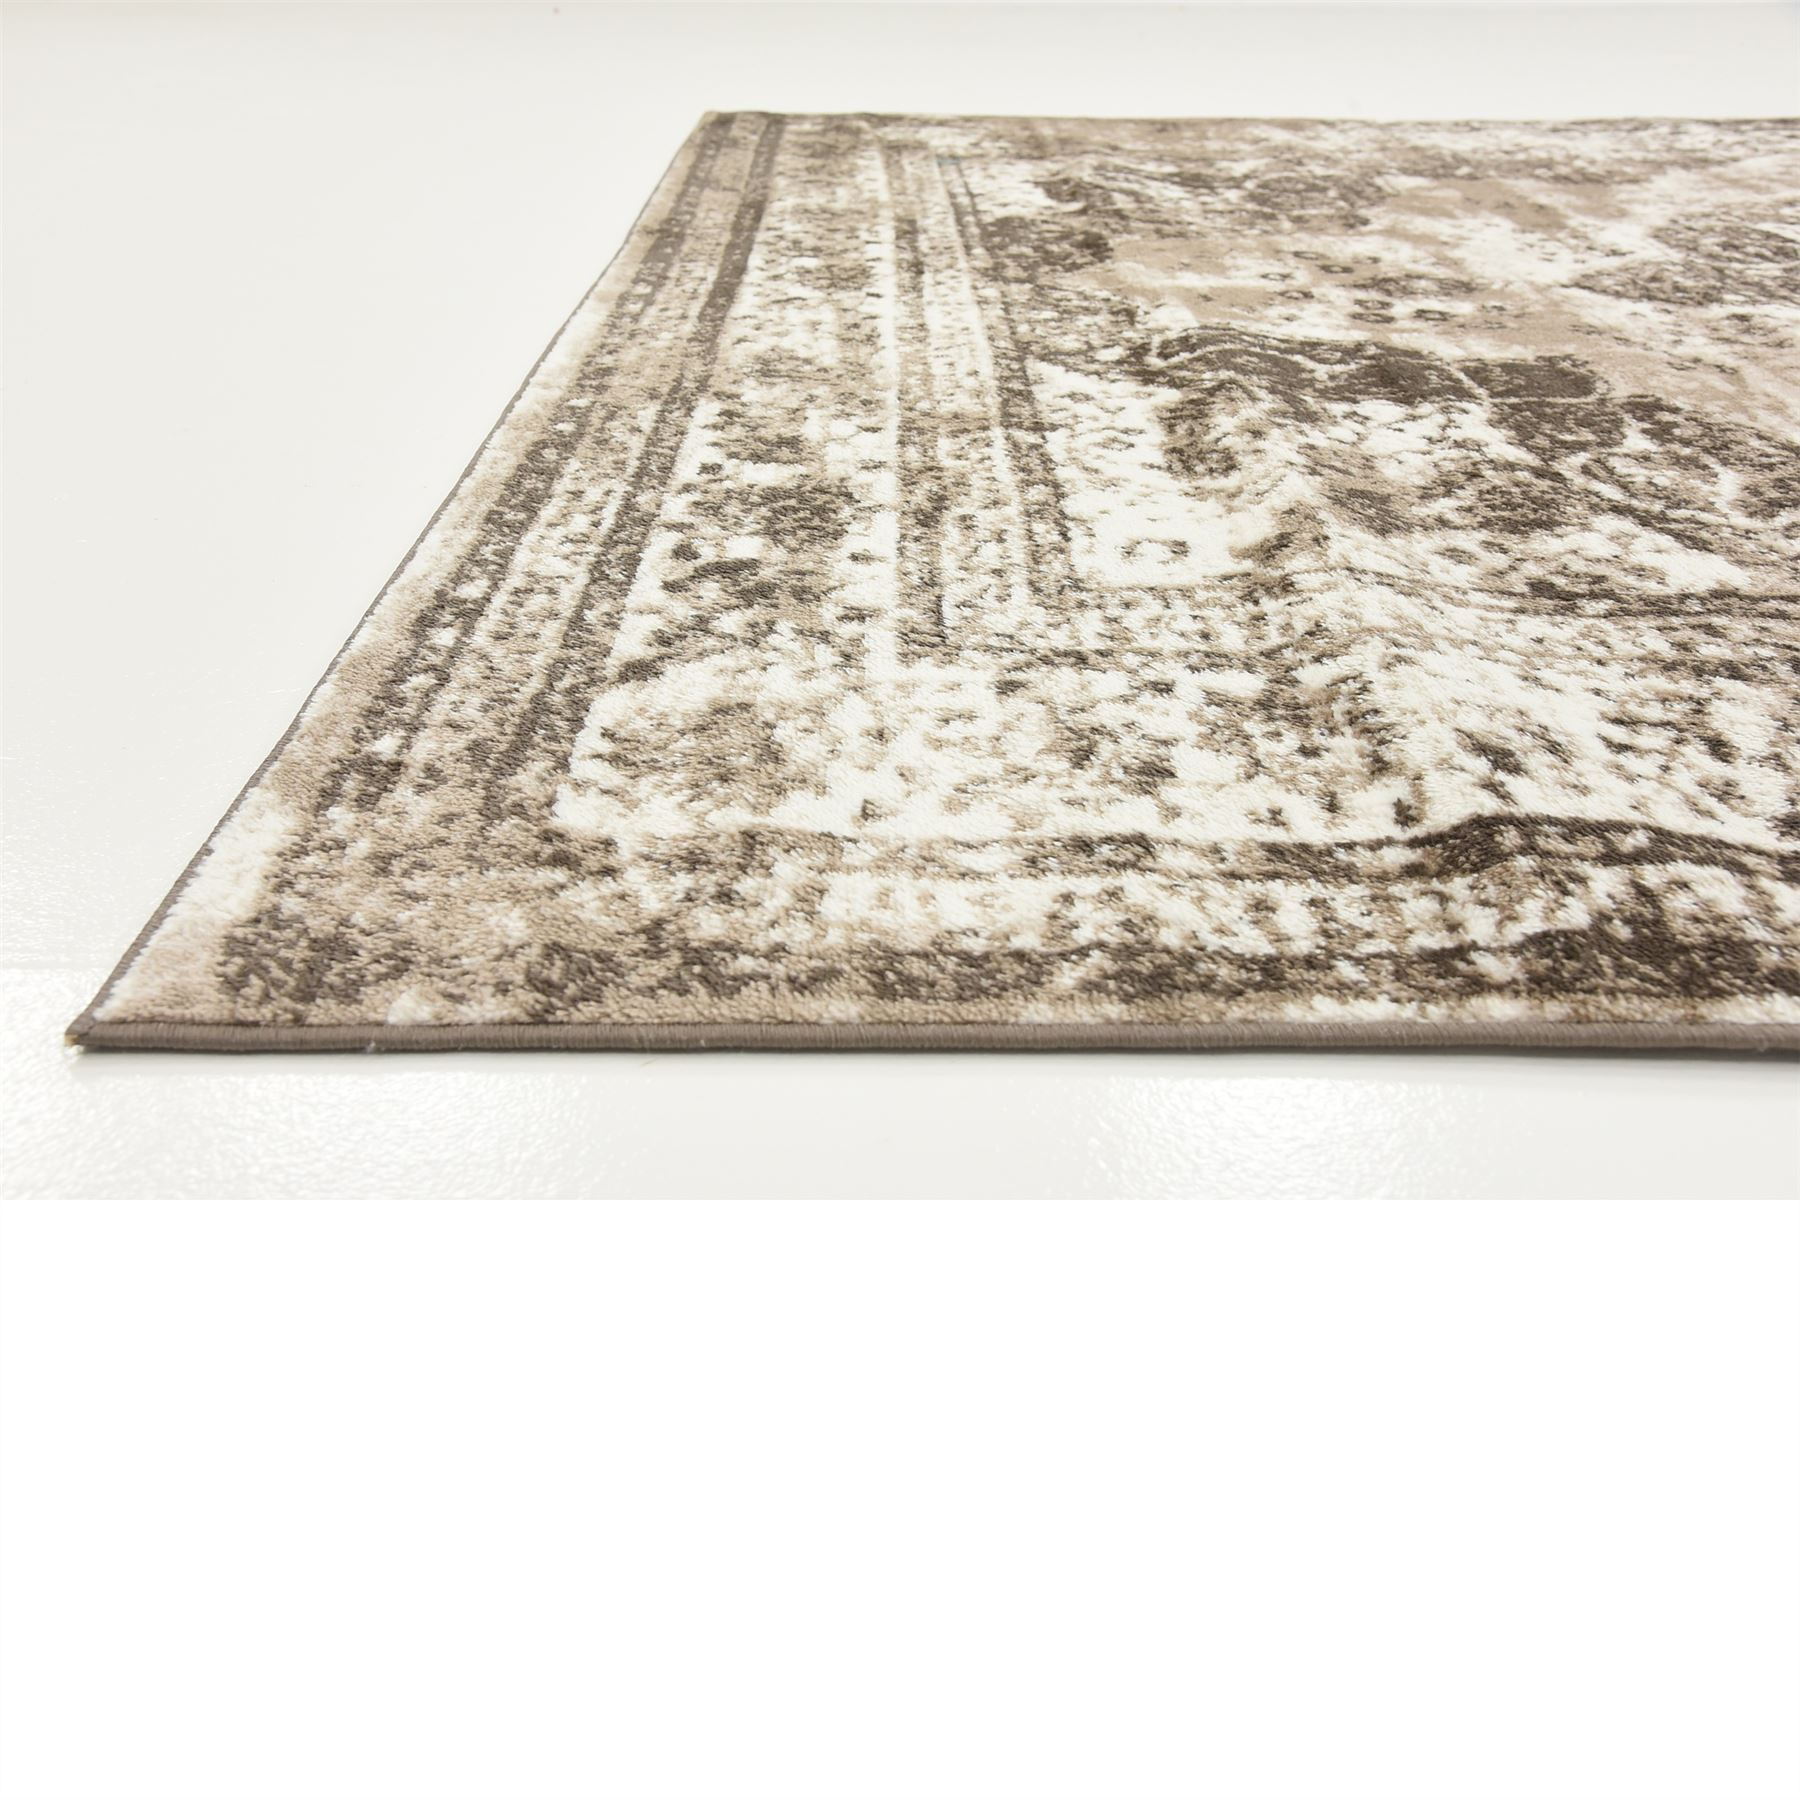 Traditional-Inspired-Persian-Faded-Transitional-Area-Rug-Multi-Color-ALL-SIZES thumbnail 30